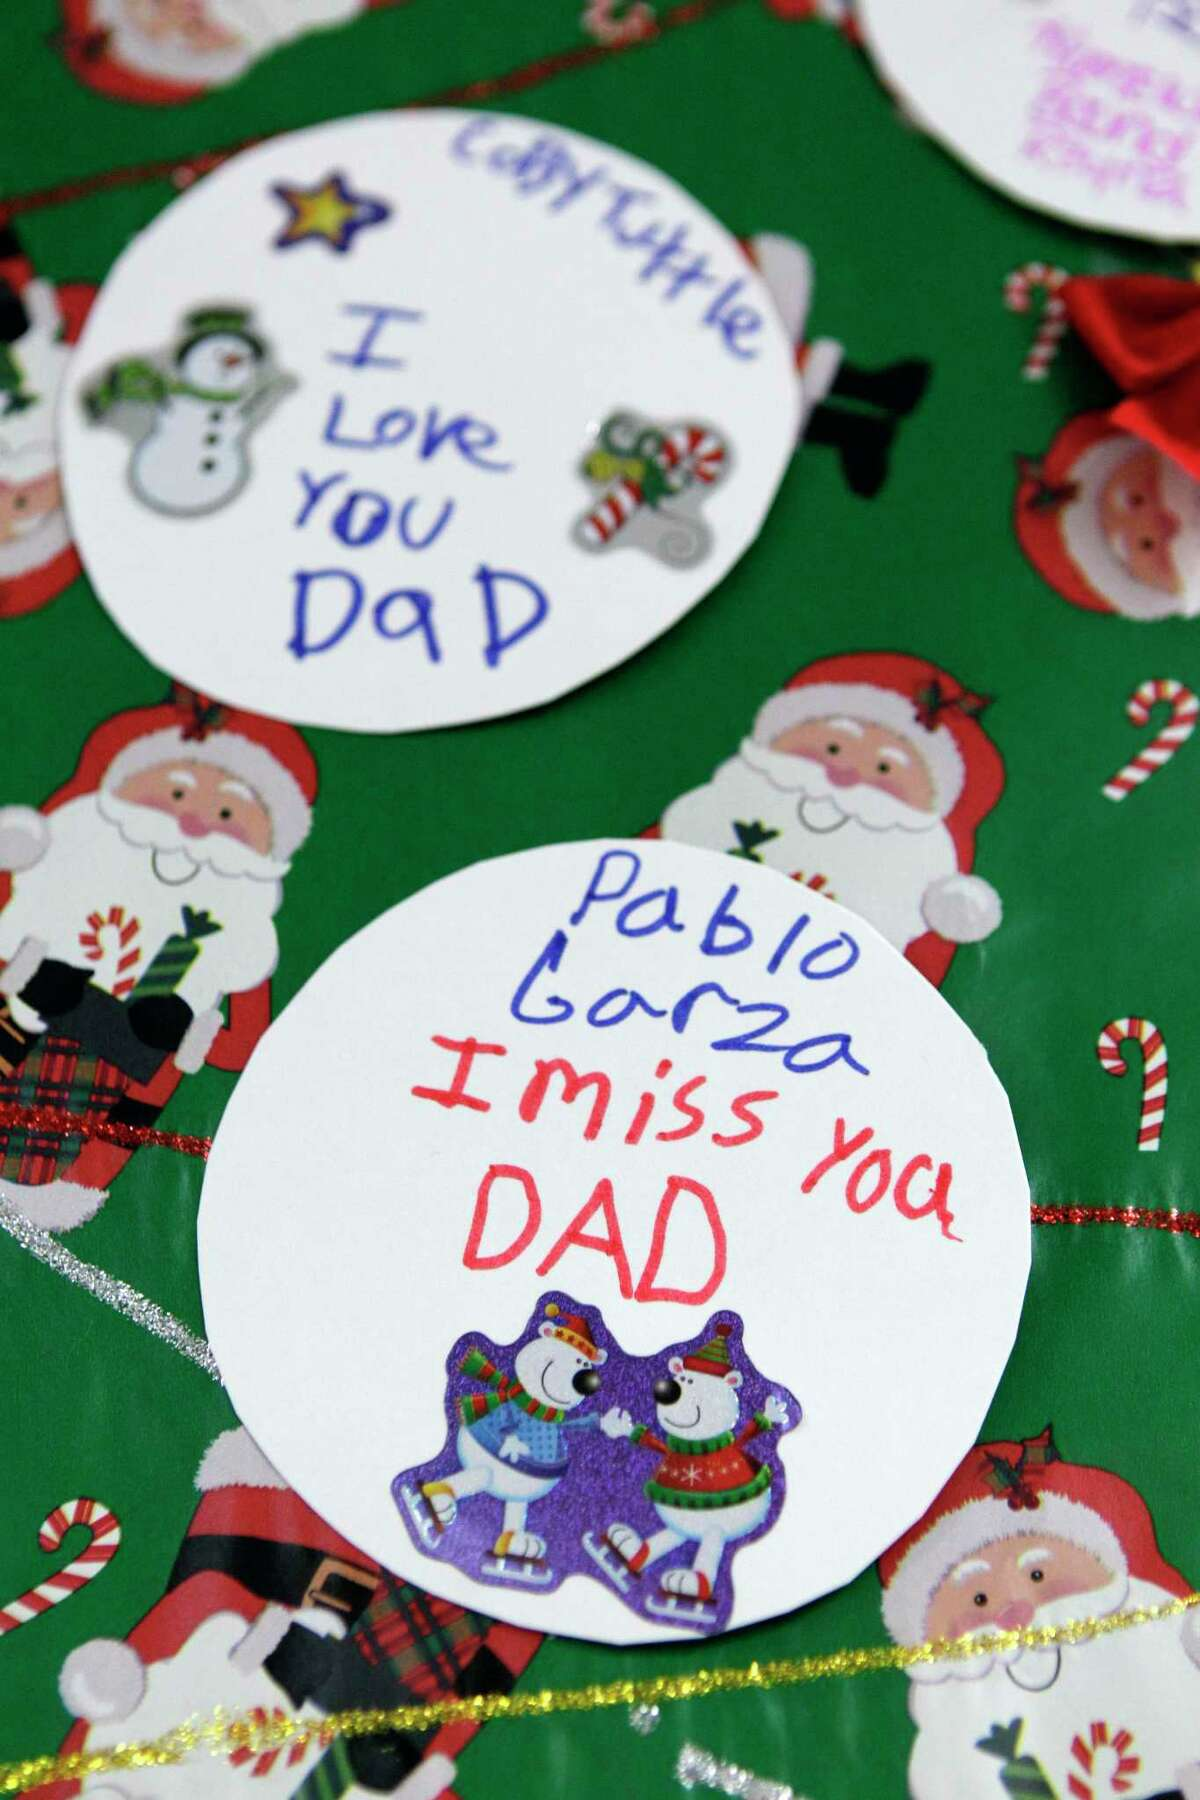 Children left messages for their incarcerated dads on a paper tree during the Angel Tree event at the Texas Department of Criminal Justice Carol Vance Unit Saturday, Dec. 7, 2013, in Richmond. The inmates are part of InnerChange Freedom Initiative, a faith based pre-release program, at the TDCJ Carol Vance Unit.